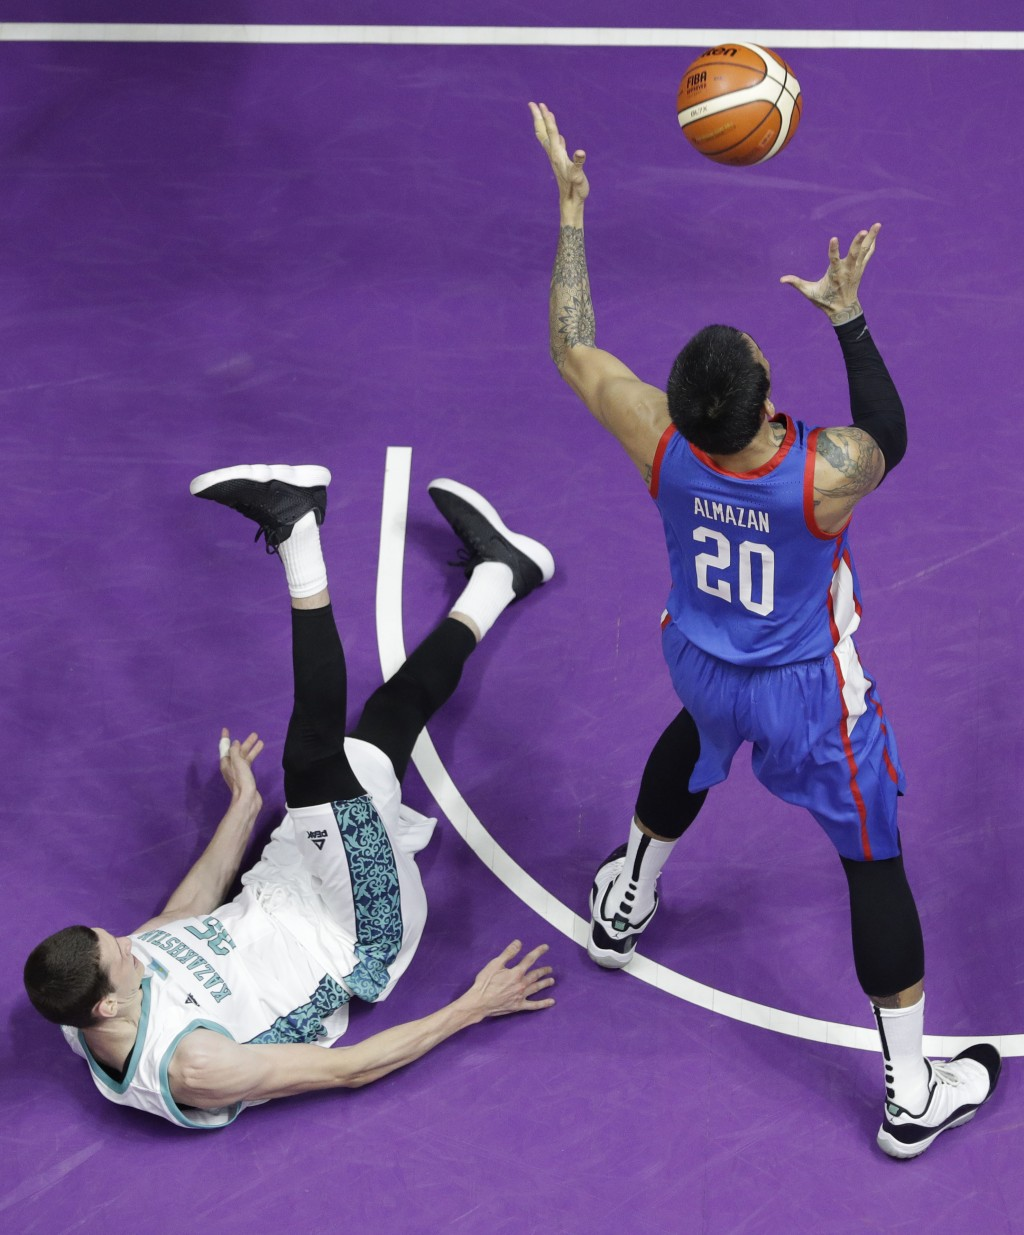 Philippines' Raymond Almazan, right, controls the ball against Kazakhstan Maxim Marchuck during their men's basketball match at the 18th Asian Games i...